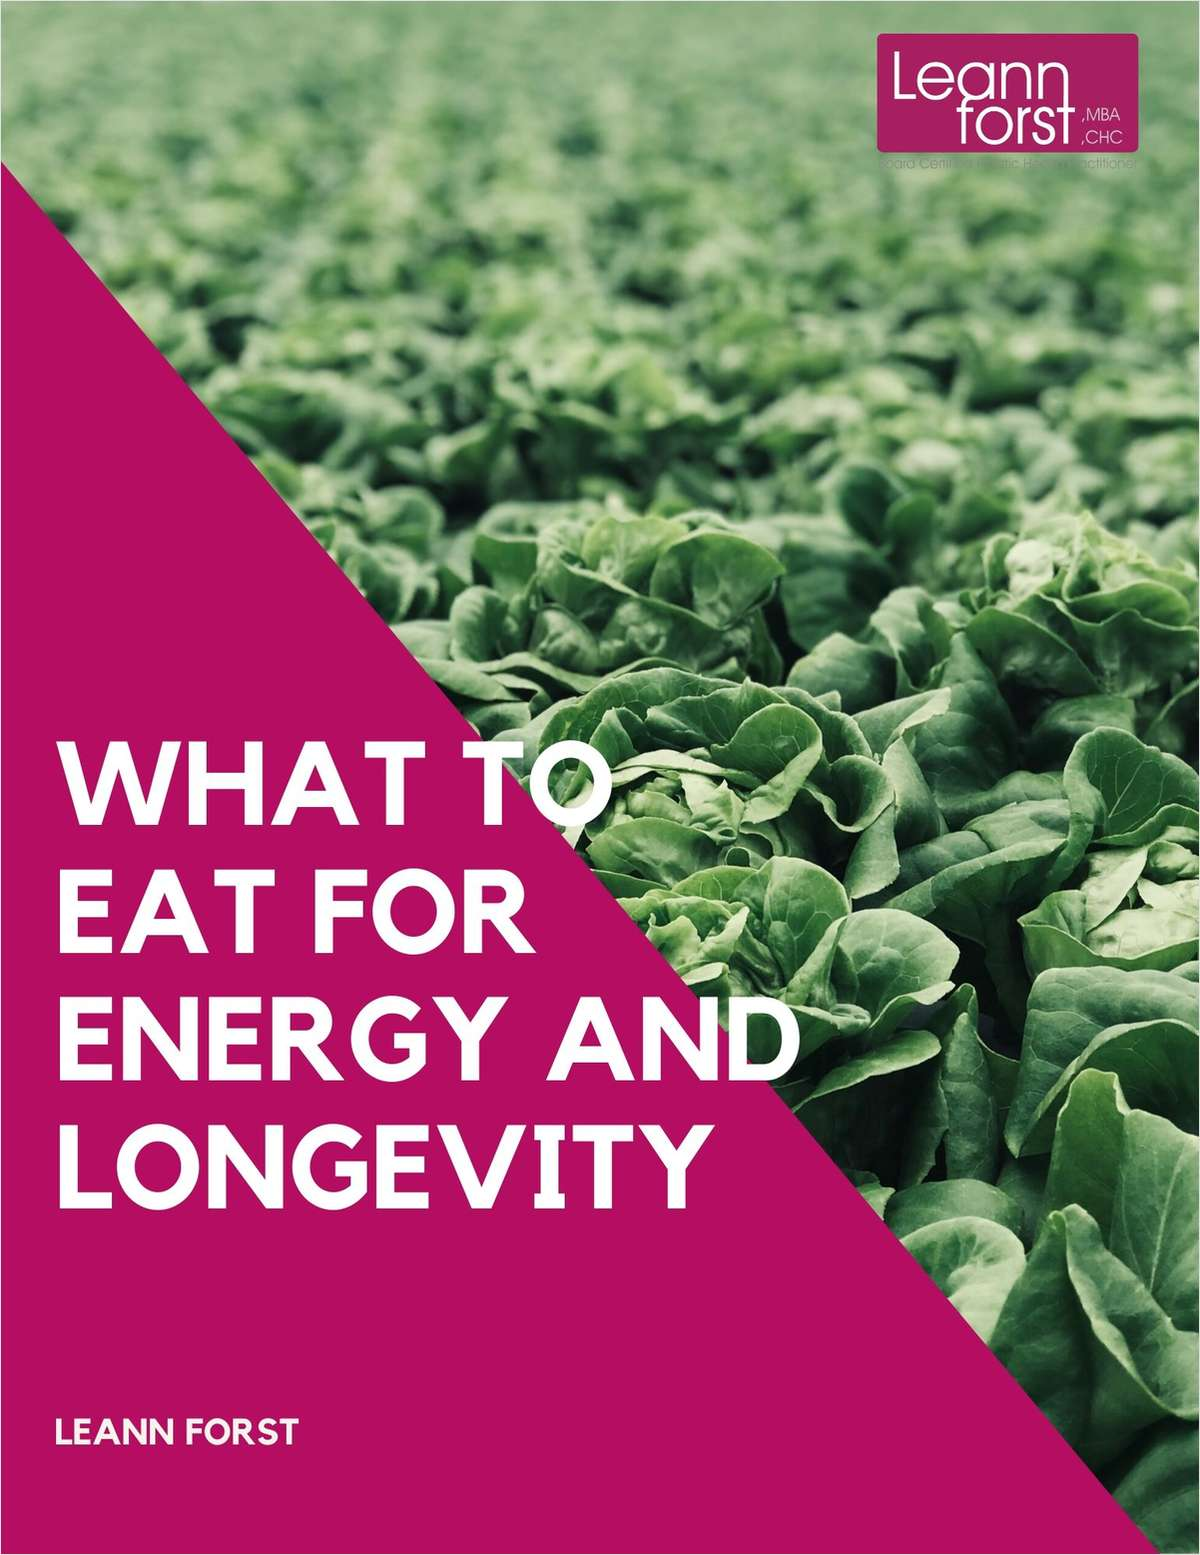 What to Eat for Energy and Longevity